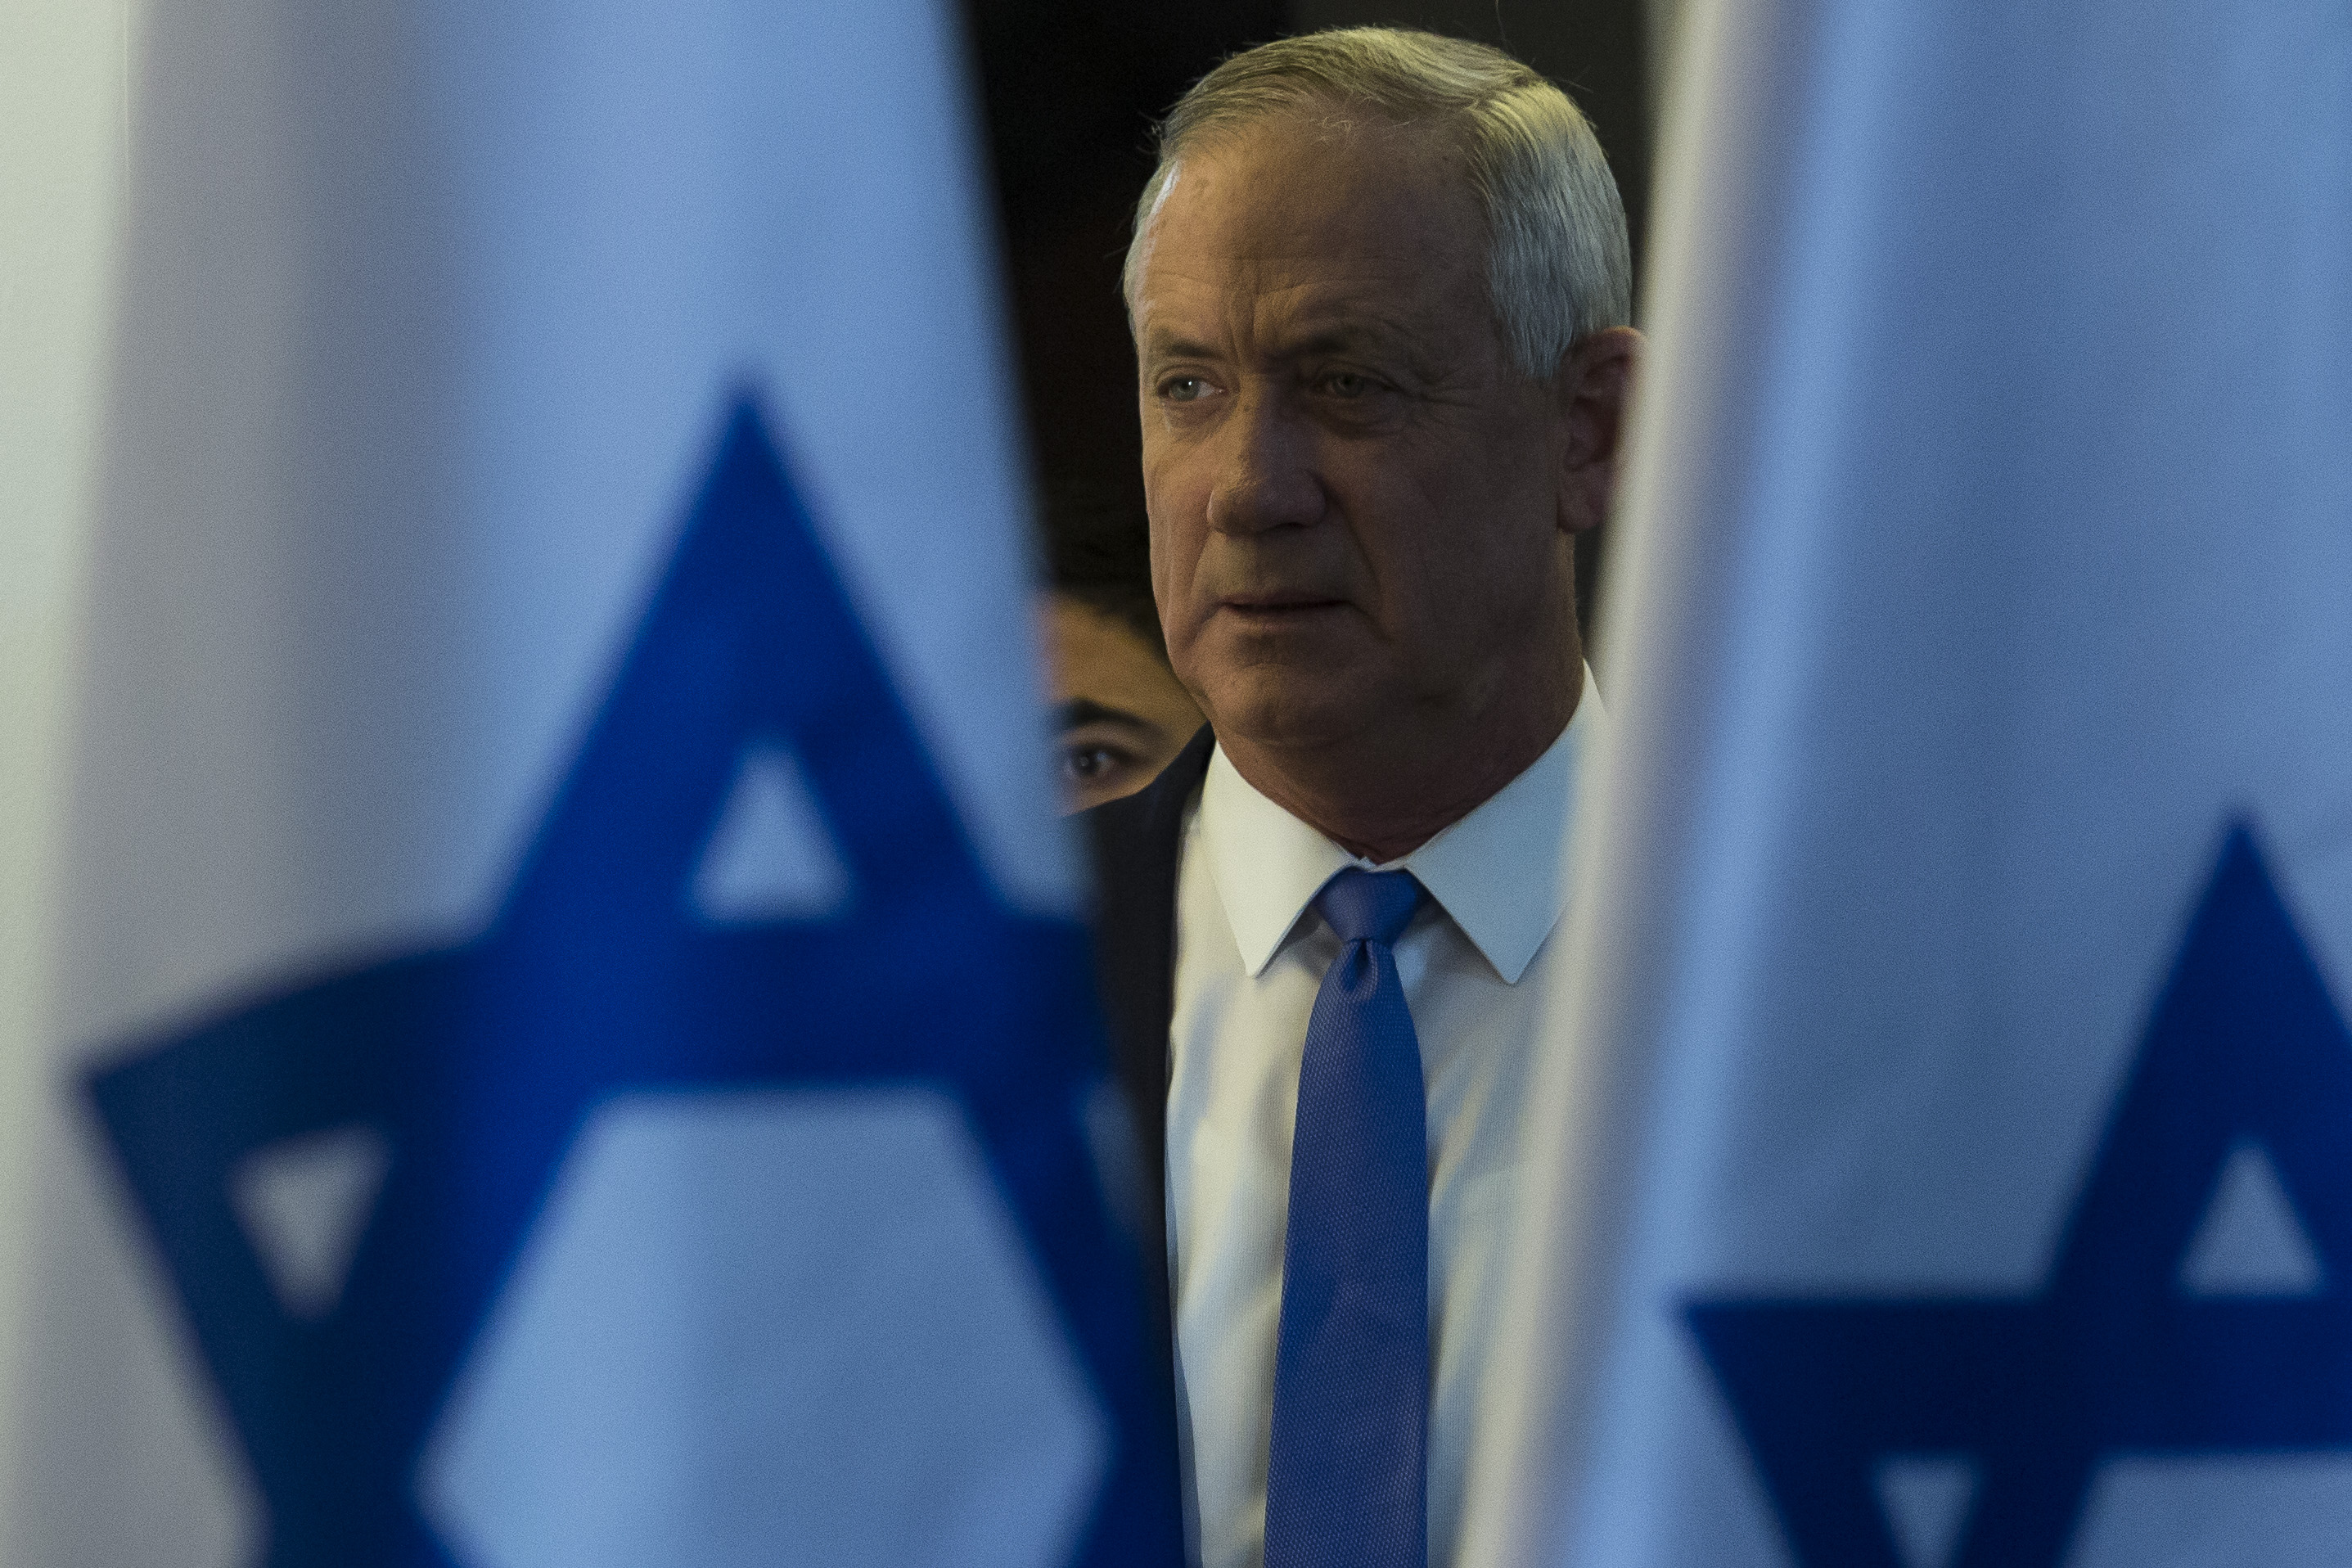 Benny Gantz, Blue and White party leader attends a press conference after failing to form a goverment on November 20, 2019 in Tel Aviv, Israel.